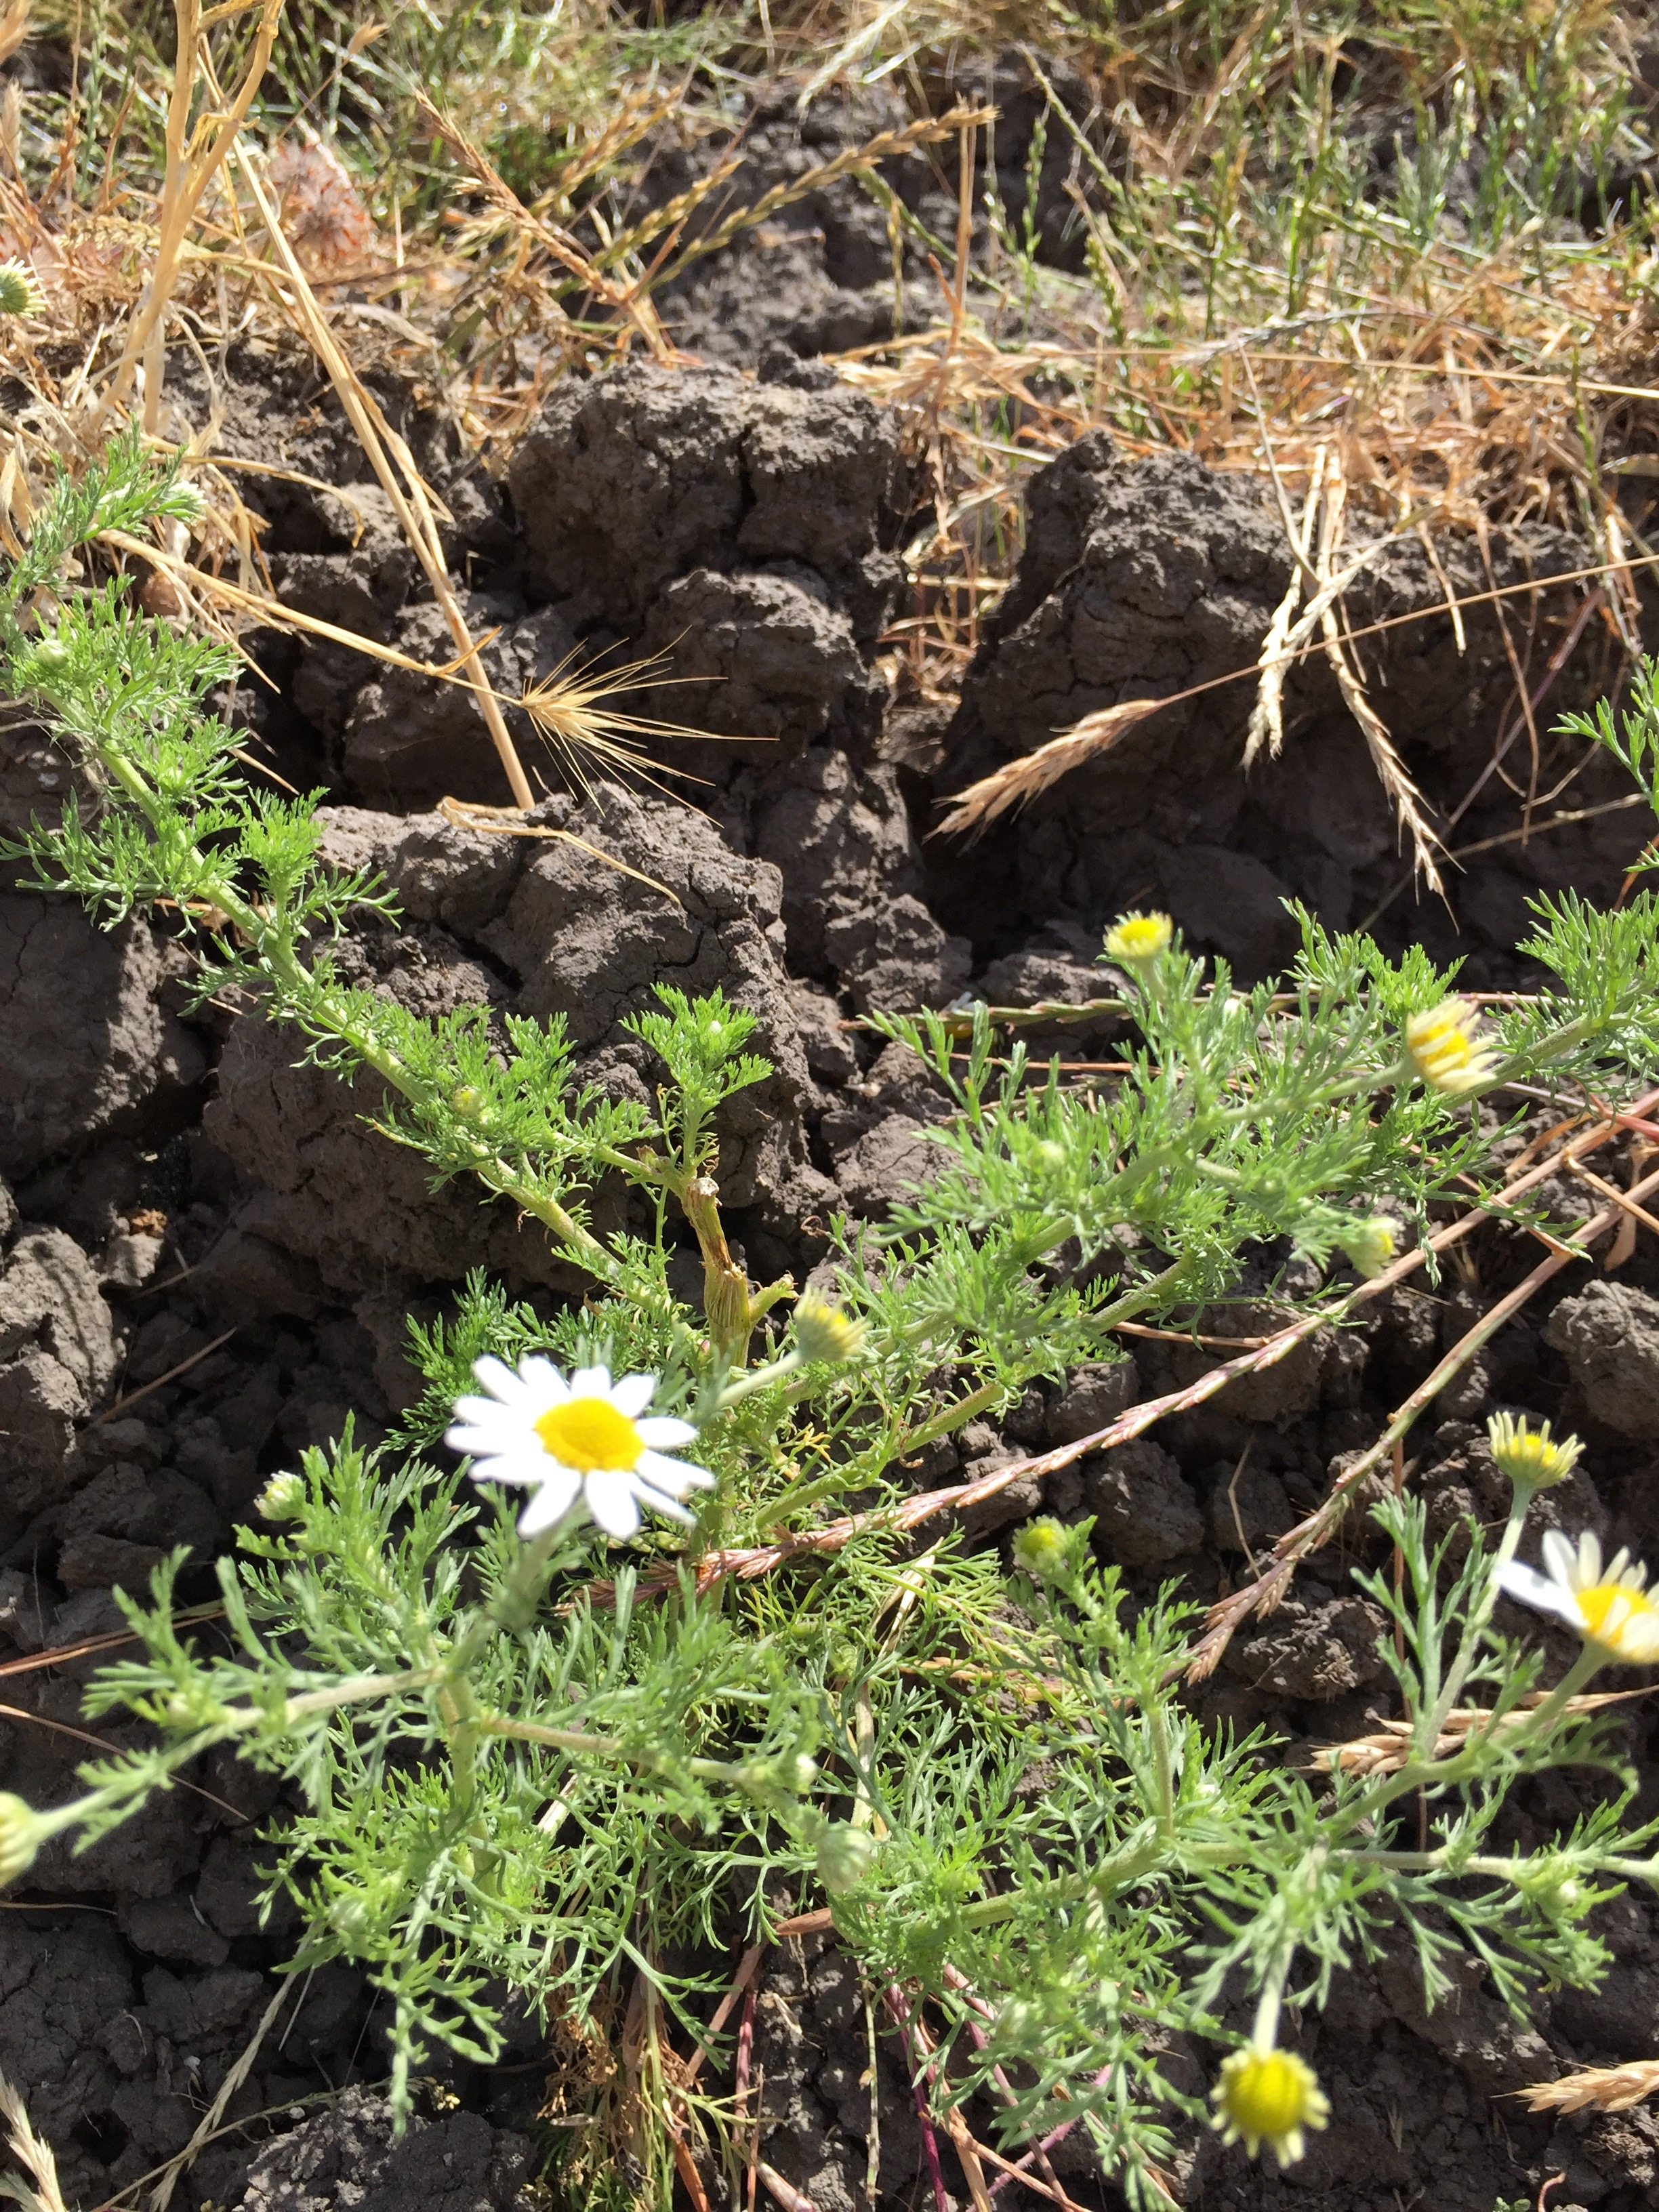 Amazing pineapple weed, surviving beautifully in dry, cracked clay